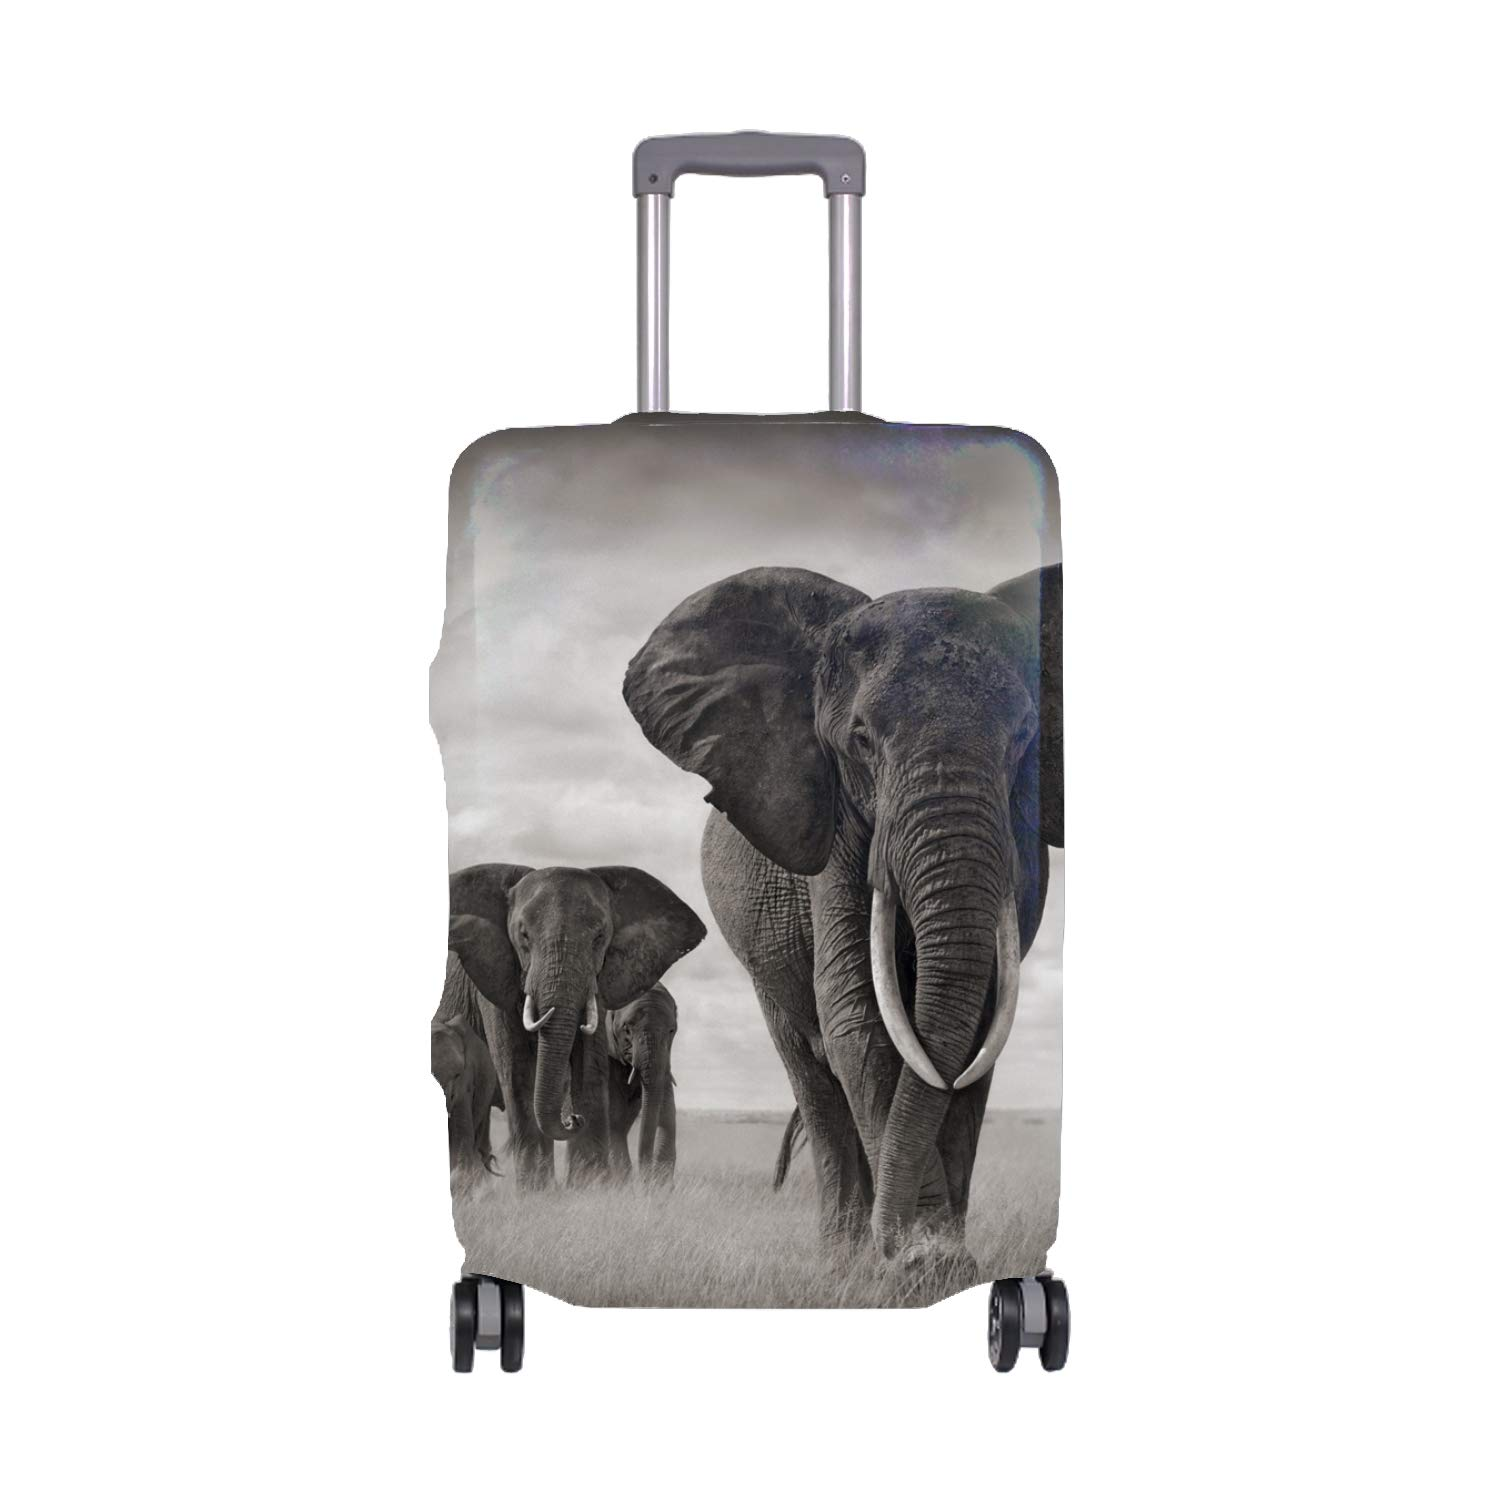 Cool Cat Creative Color Printed Luggage Cover Spandex Travel Suitcase Protective Cover